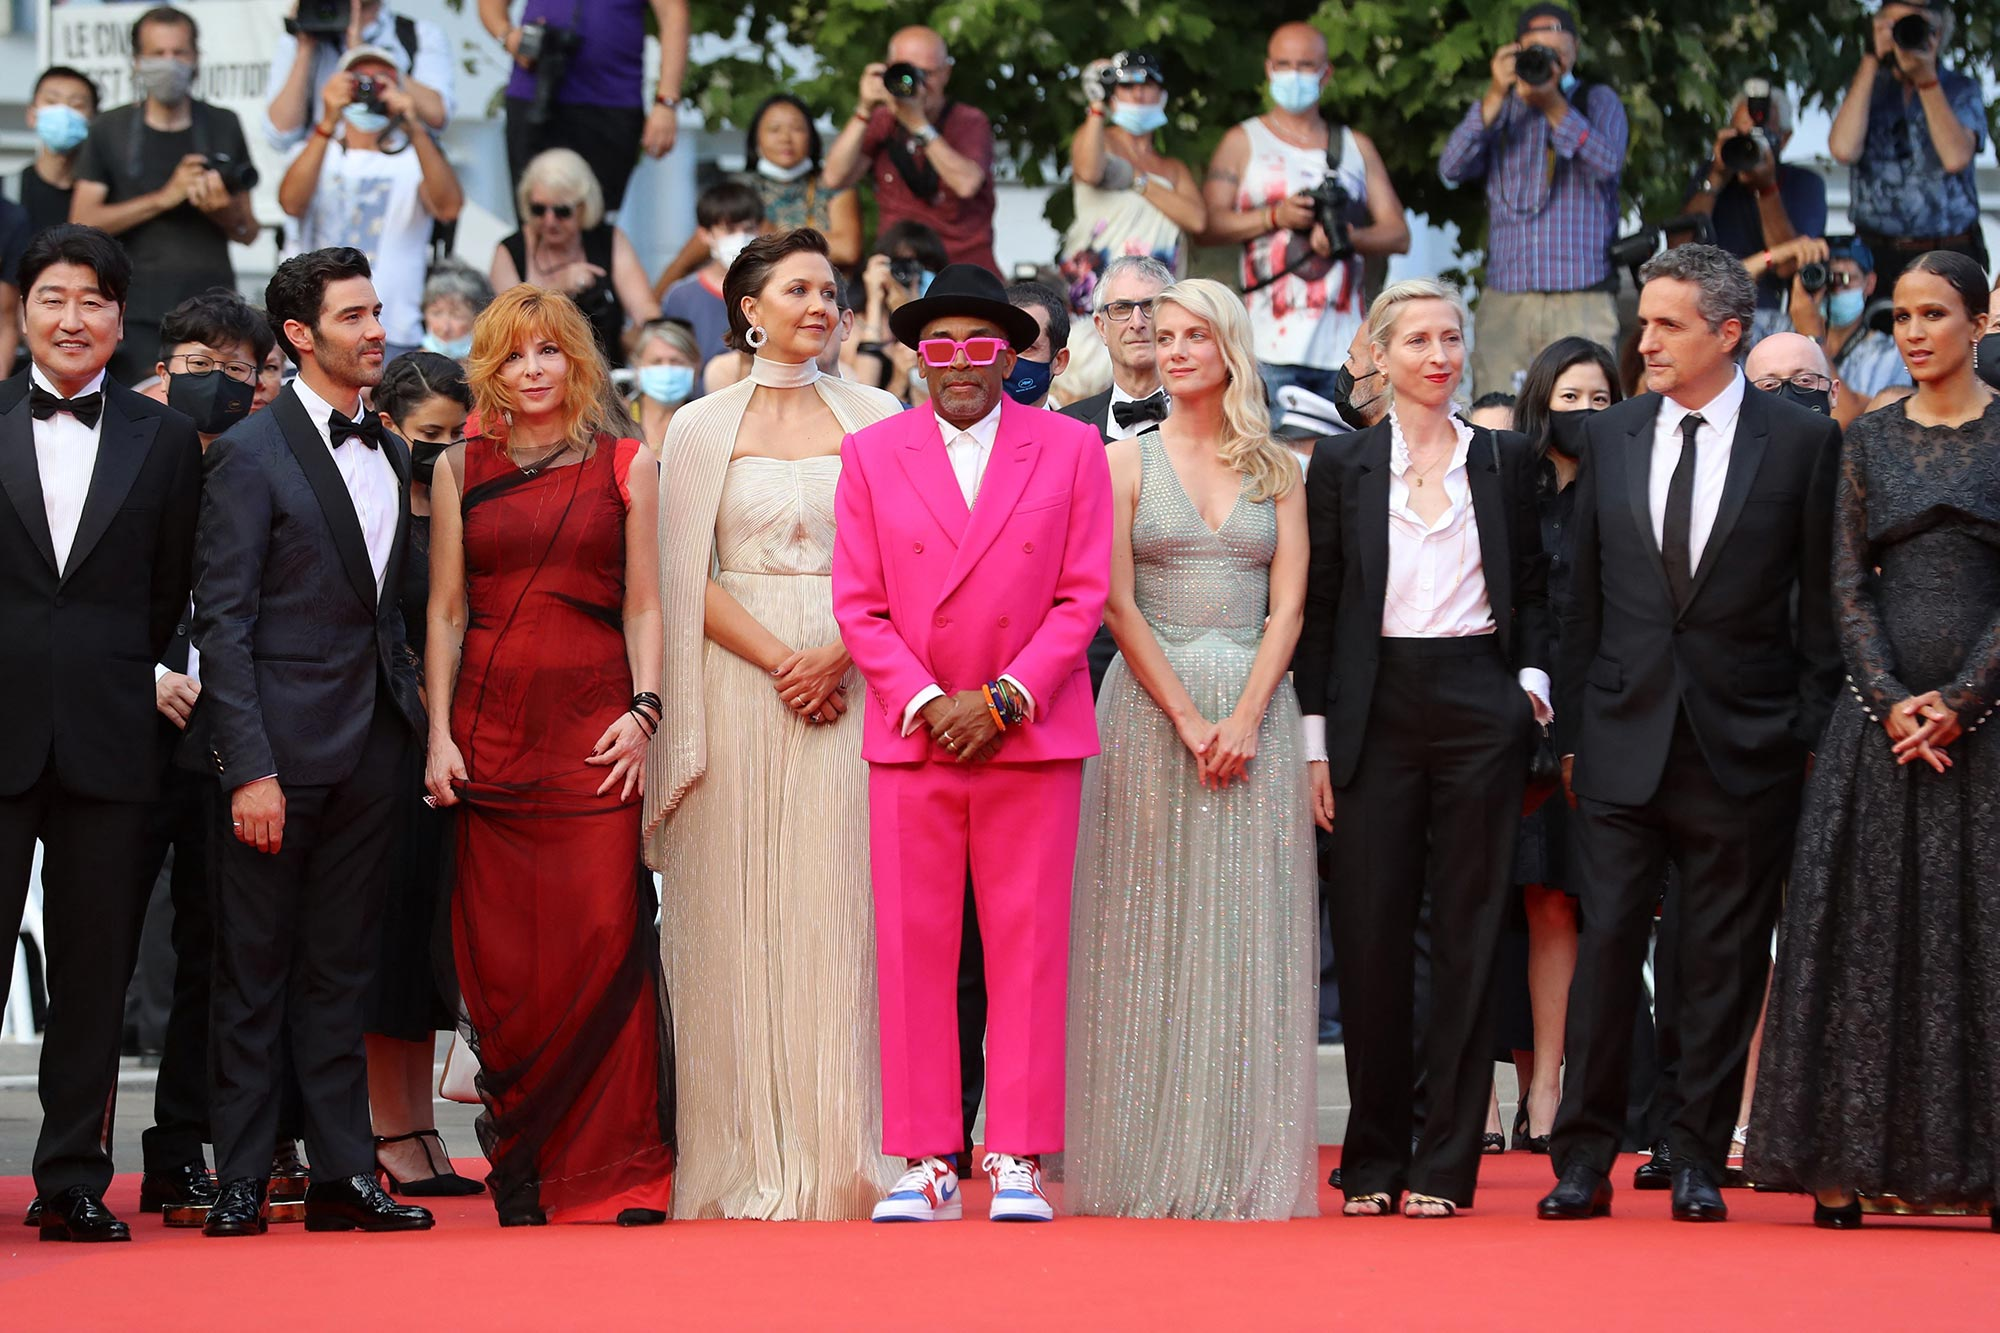 Cannes 2021 Red Carpet - The Cannes Jury